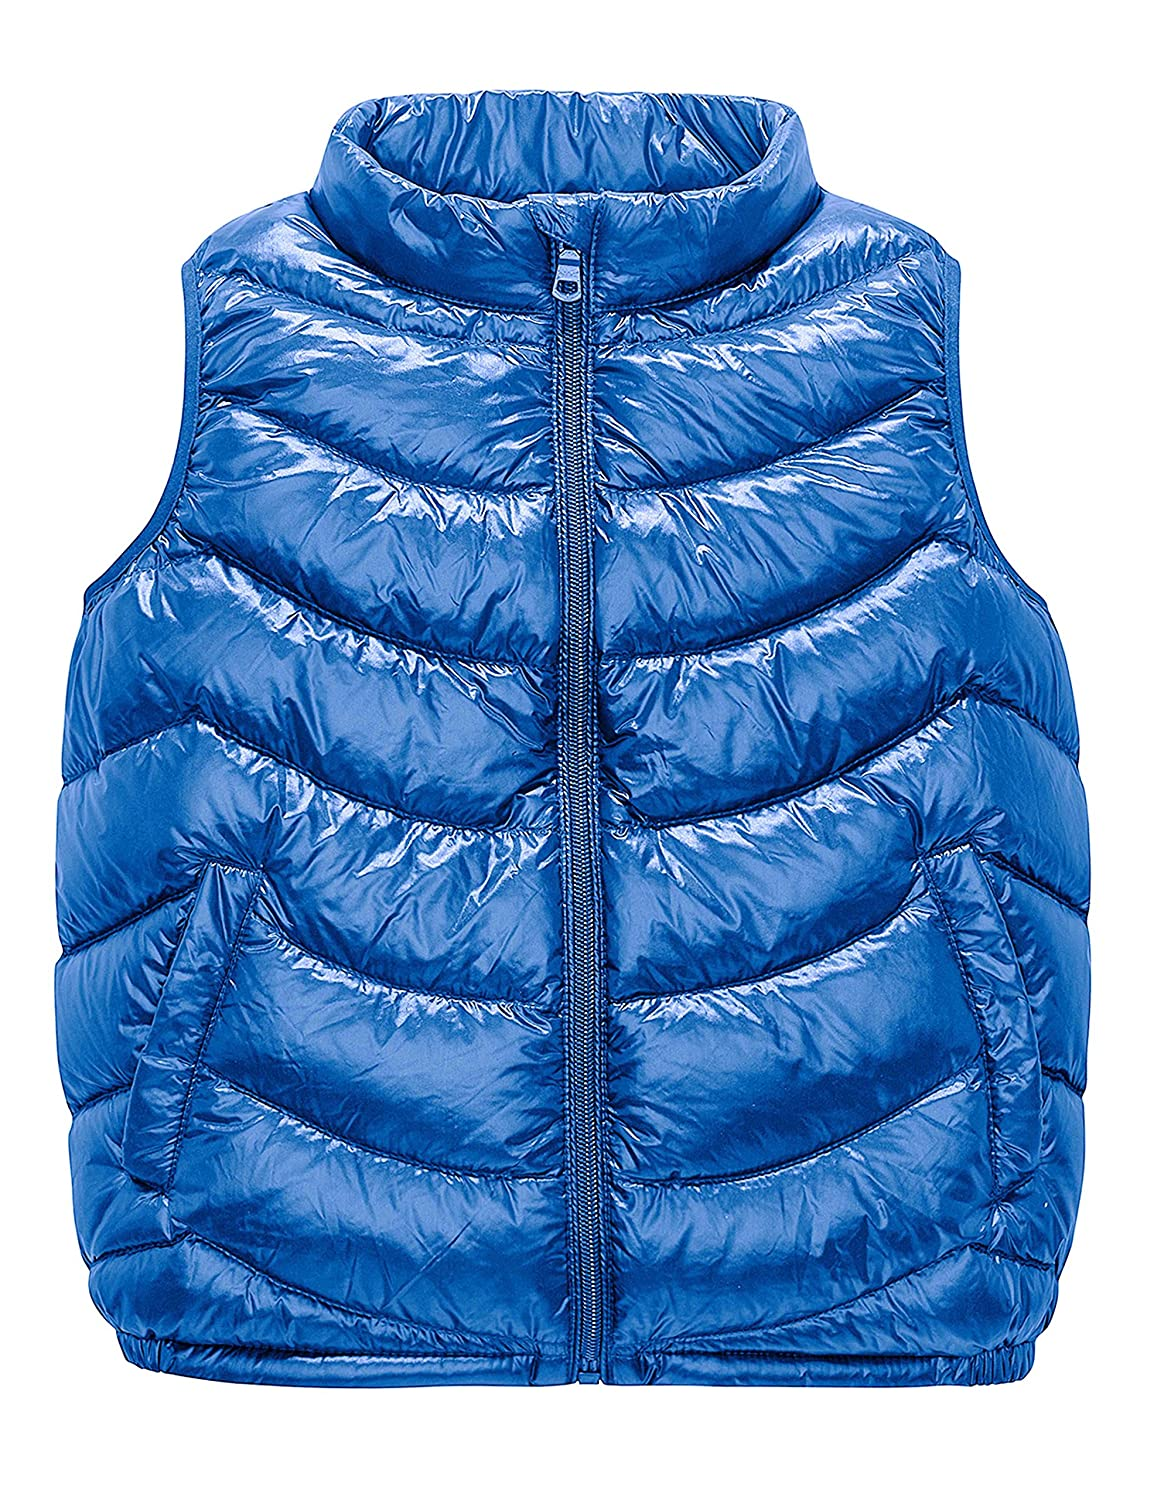 IKALI Kids Packable Ultralight Down Gilet with Collar